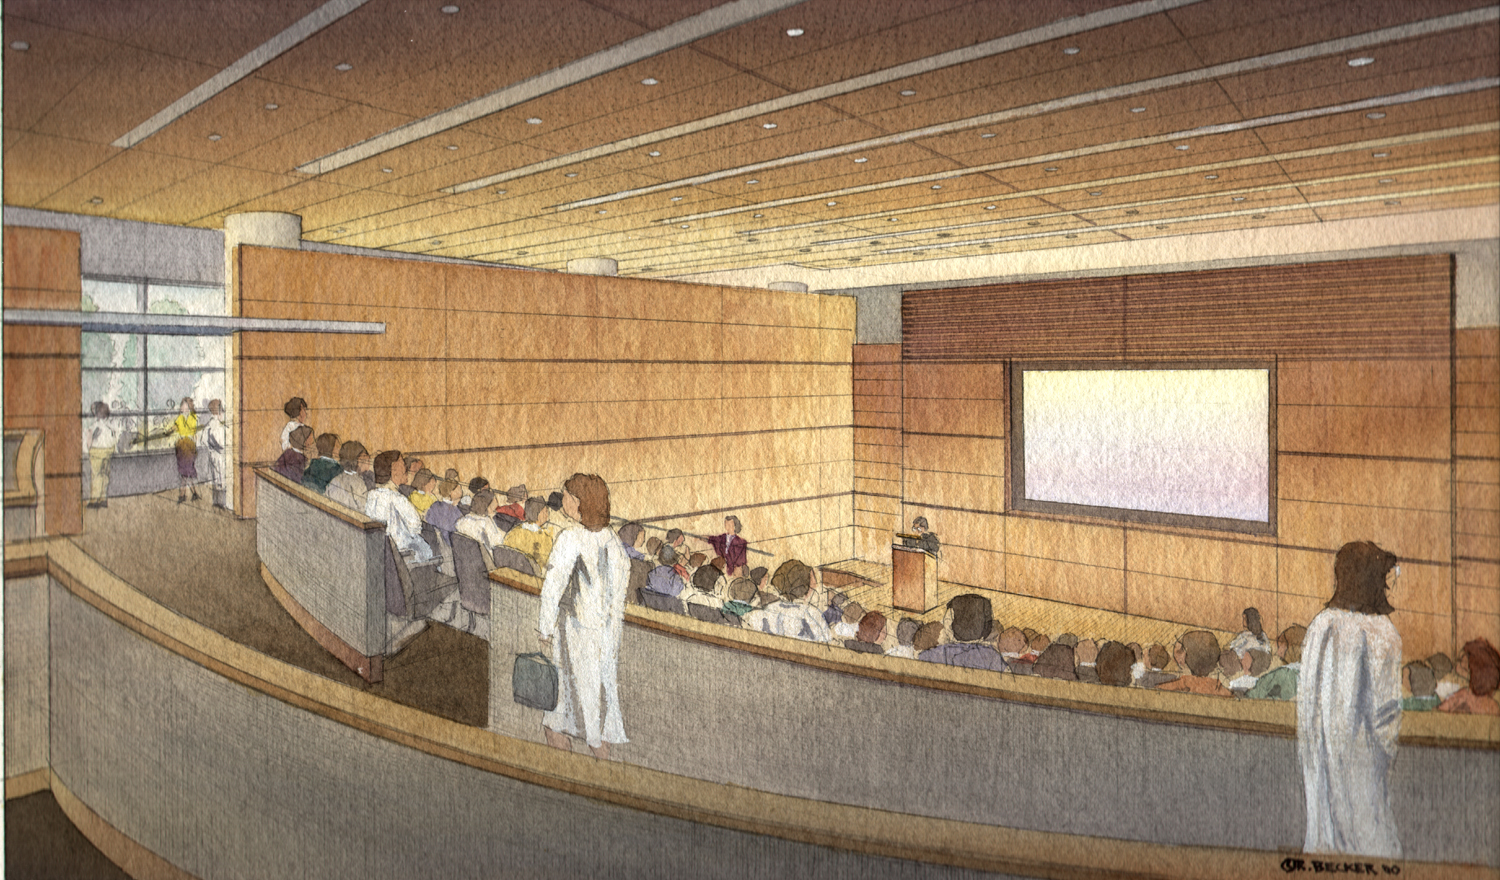 NBBJmoffittAuditorium_Architectural_Rendering_Watercolor